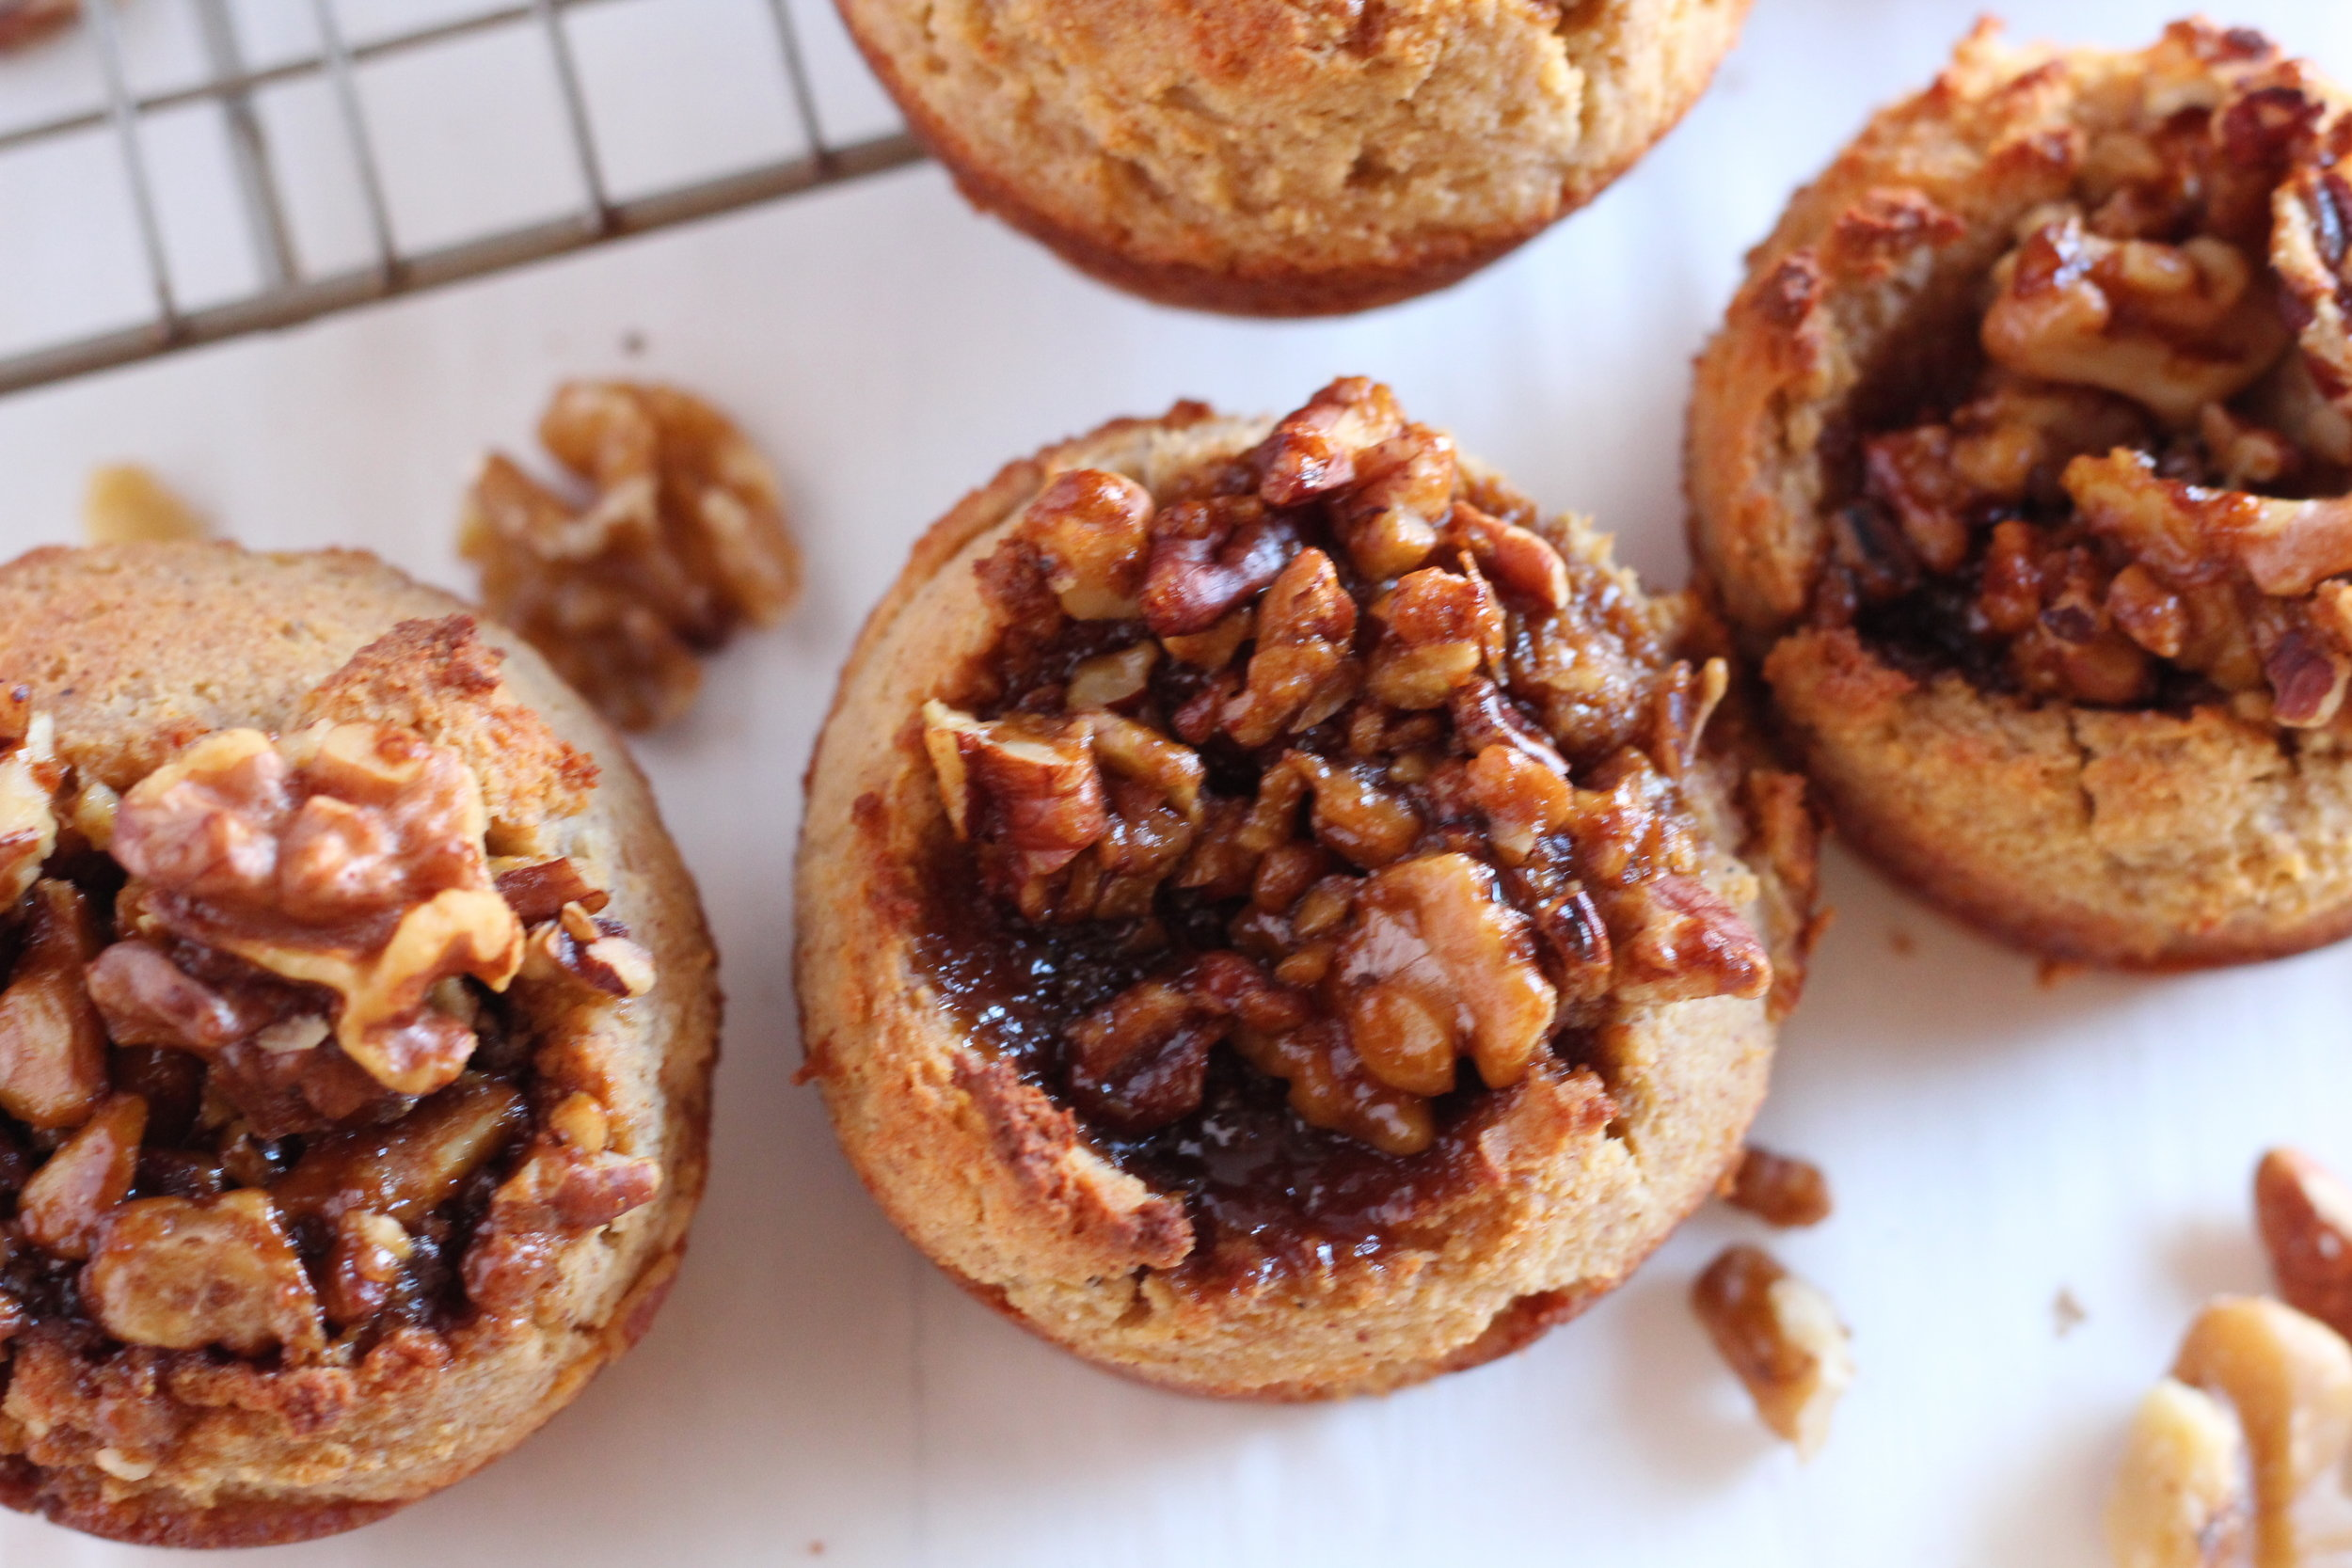 Grain Free Banana Muffins with Walnut Pecan Topping